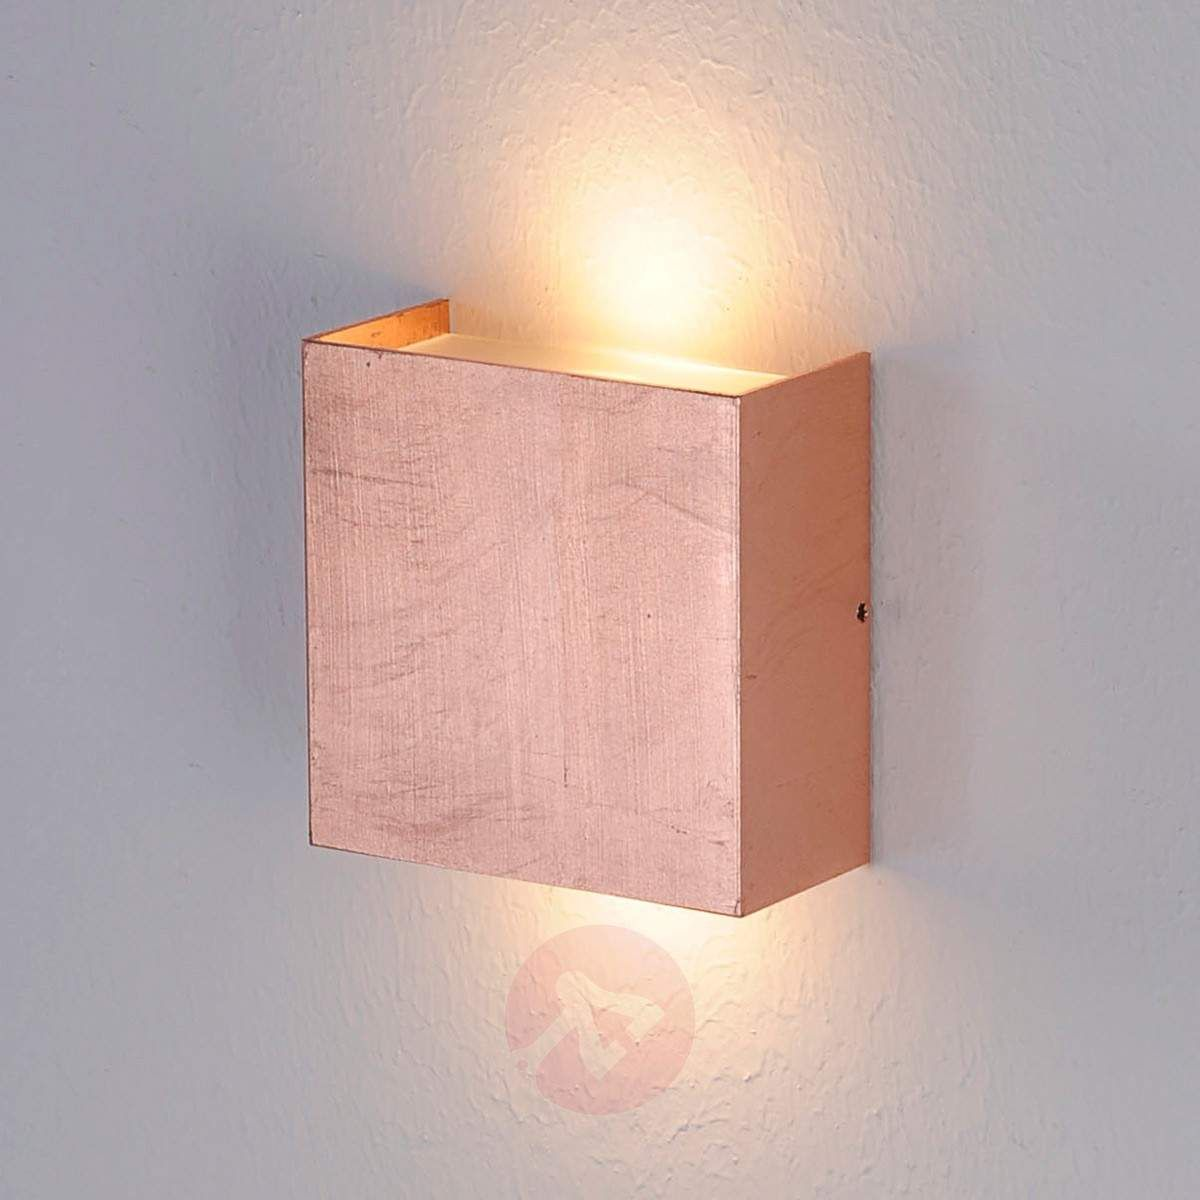 Mira Led Wall Light With Antique Copper Finish Wall Lights Living Room Copper Wall Light Wall Lights